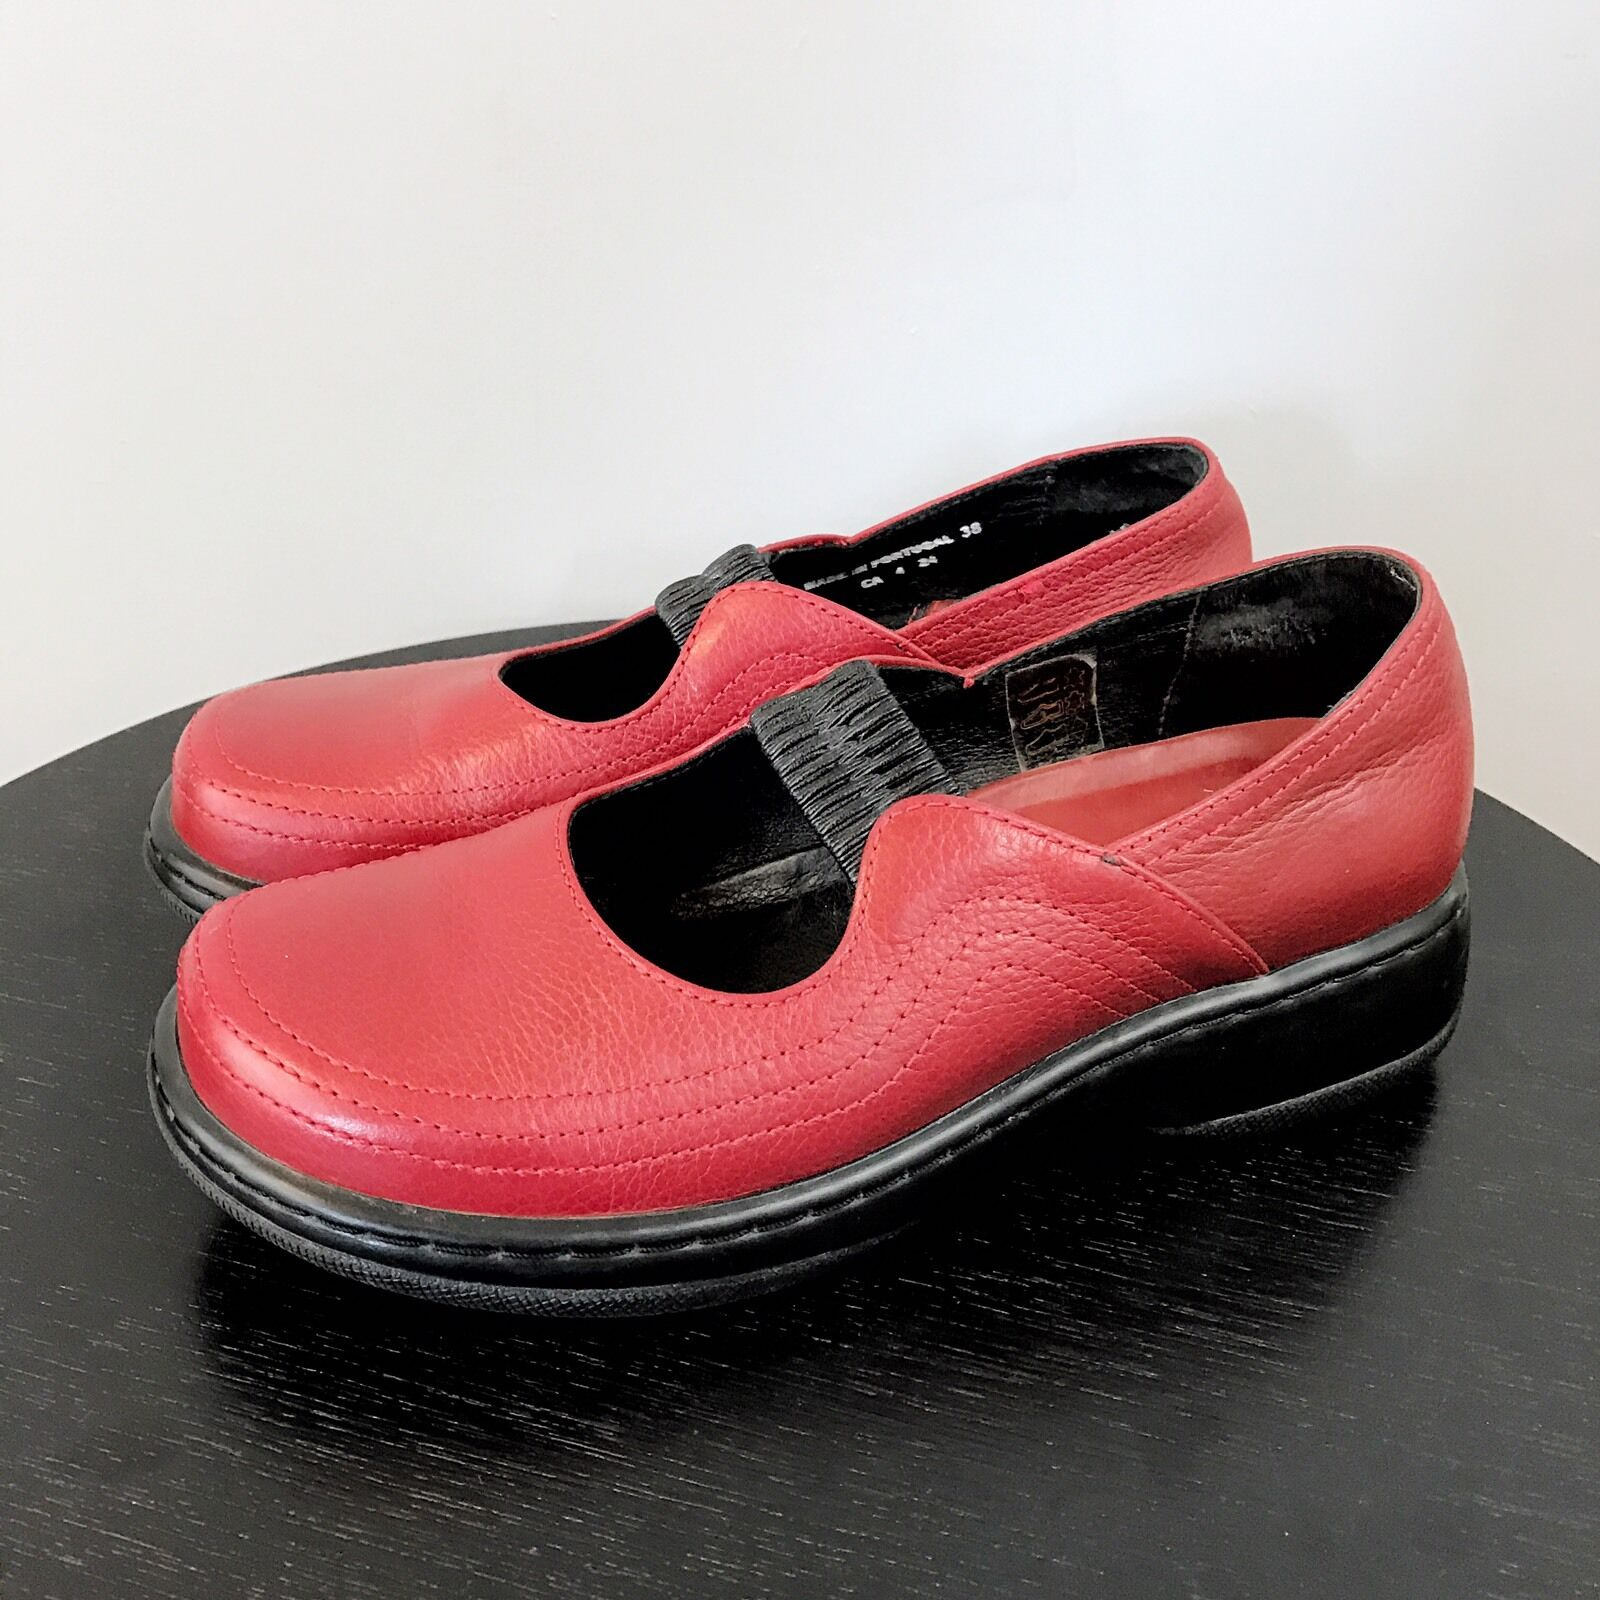 DANSKO Elle Mary Janes SZ 38 7 Leather Slip-On Style Casual Comfort Crimson